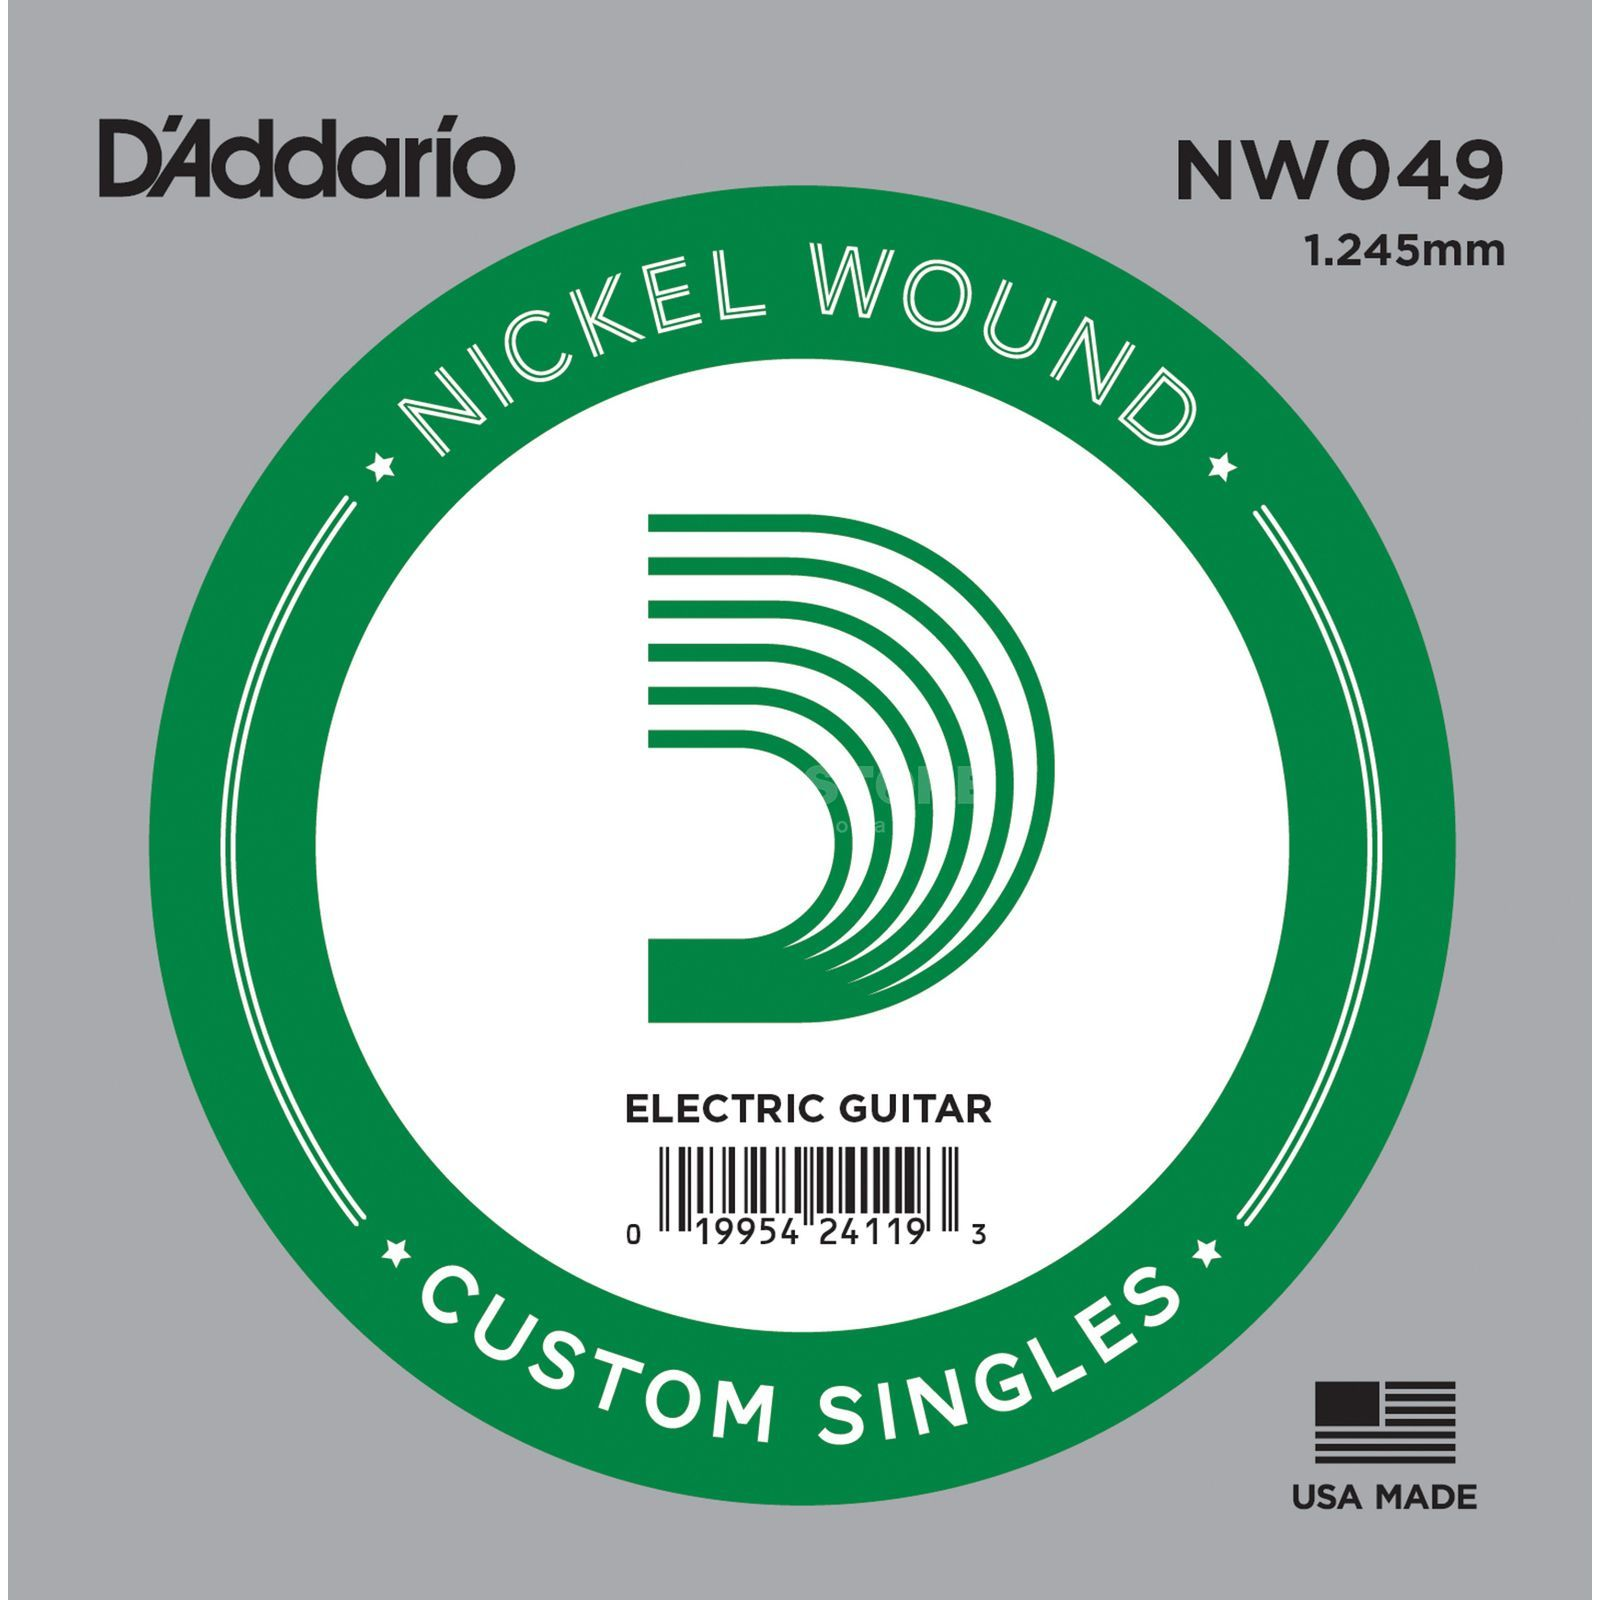 D'Addario Single String NW049 Nickelwound Изображение товара